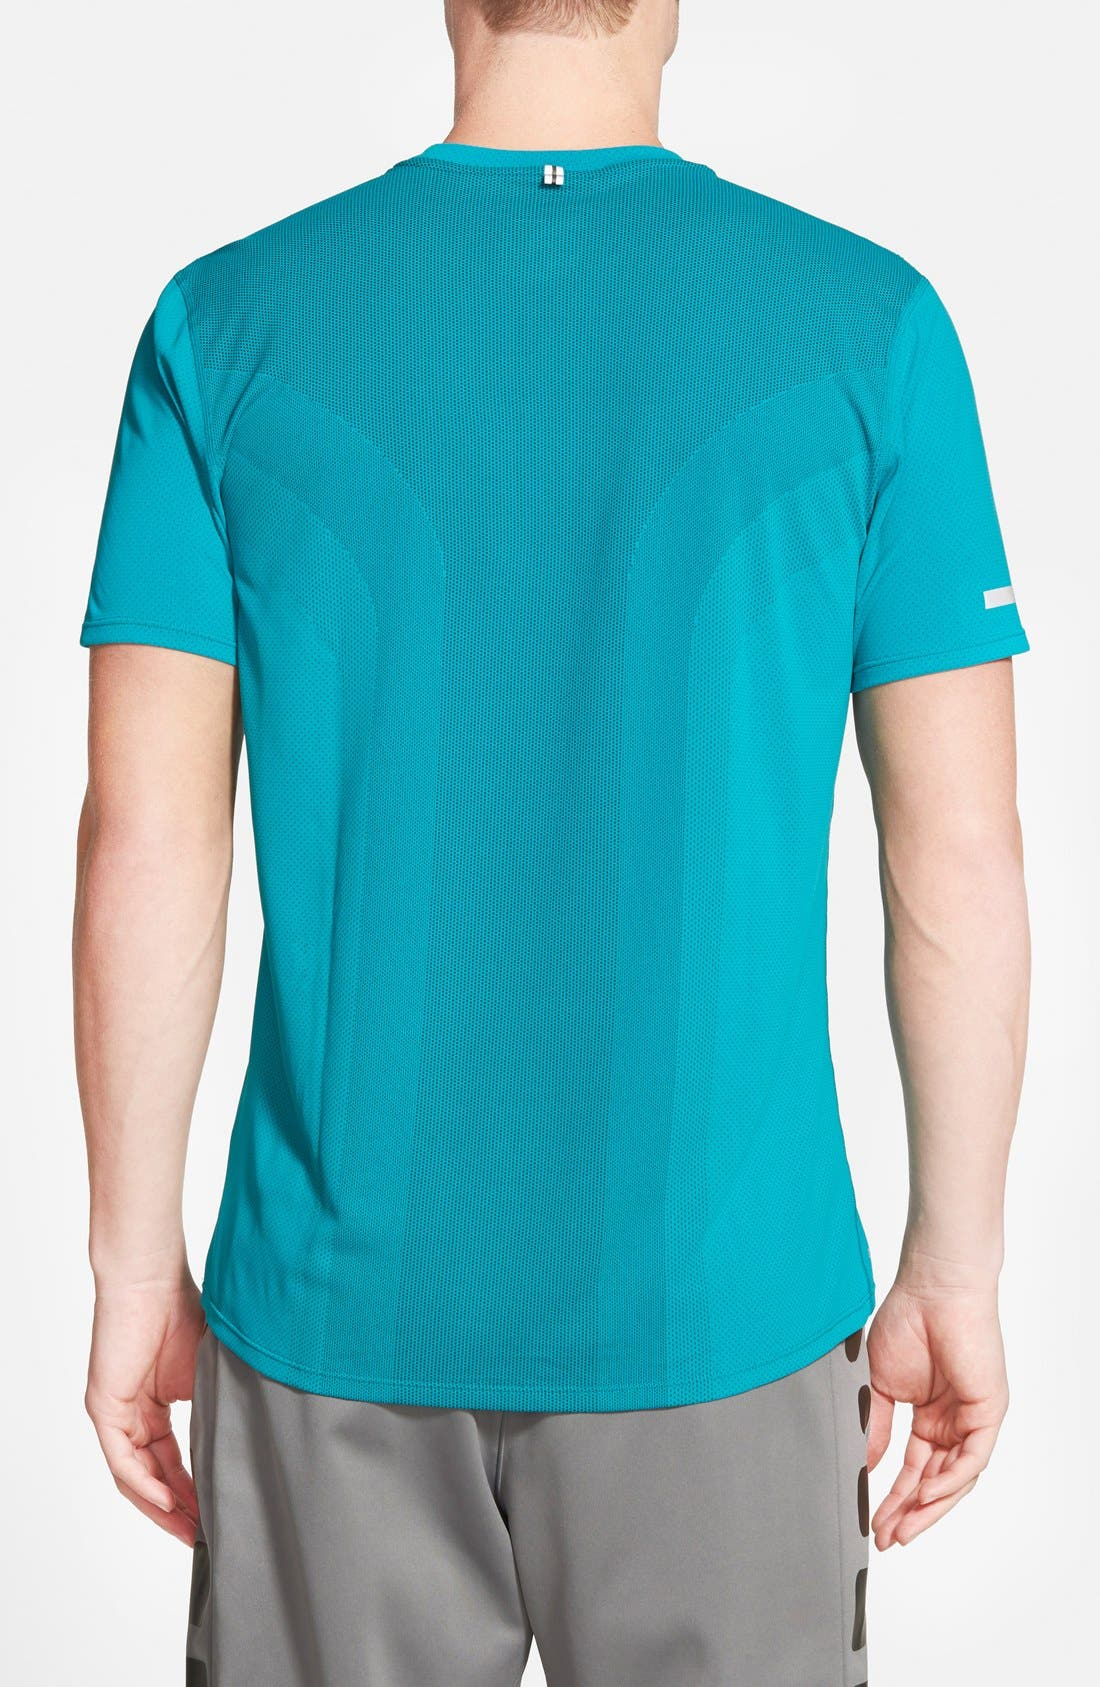 'Contour' Mesh Dri-FIT Running T-Shirt,                             Alternate thumbnail 10, color,